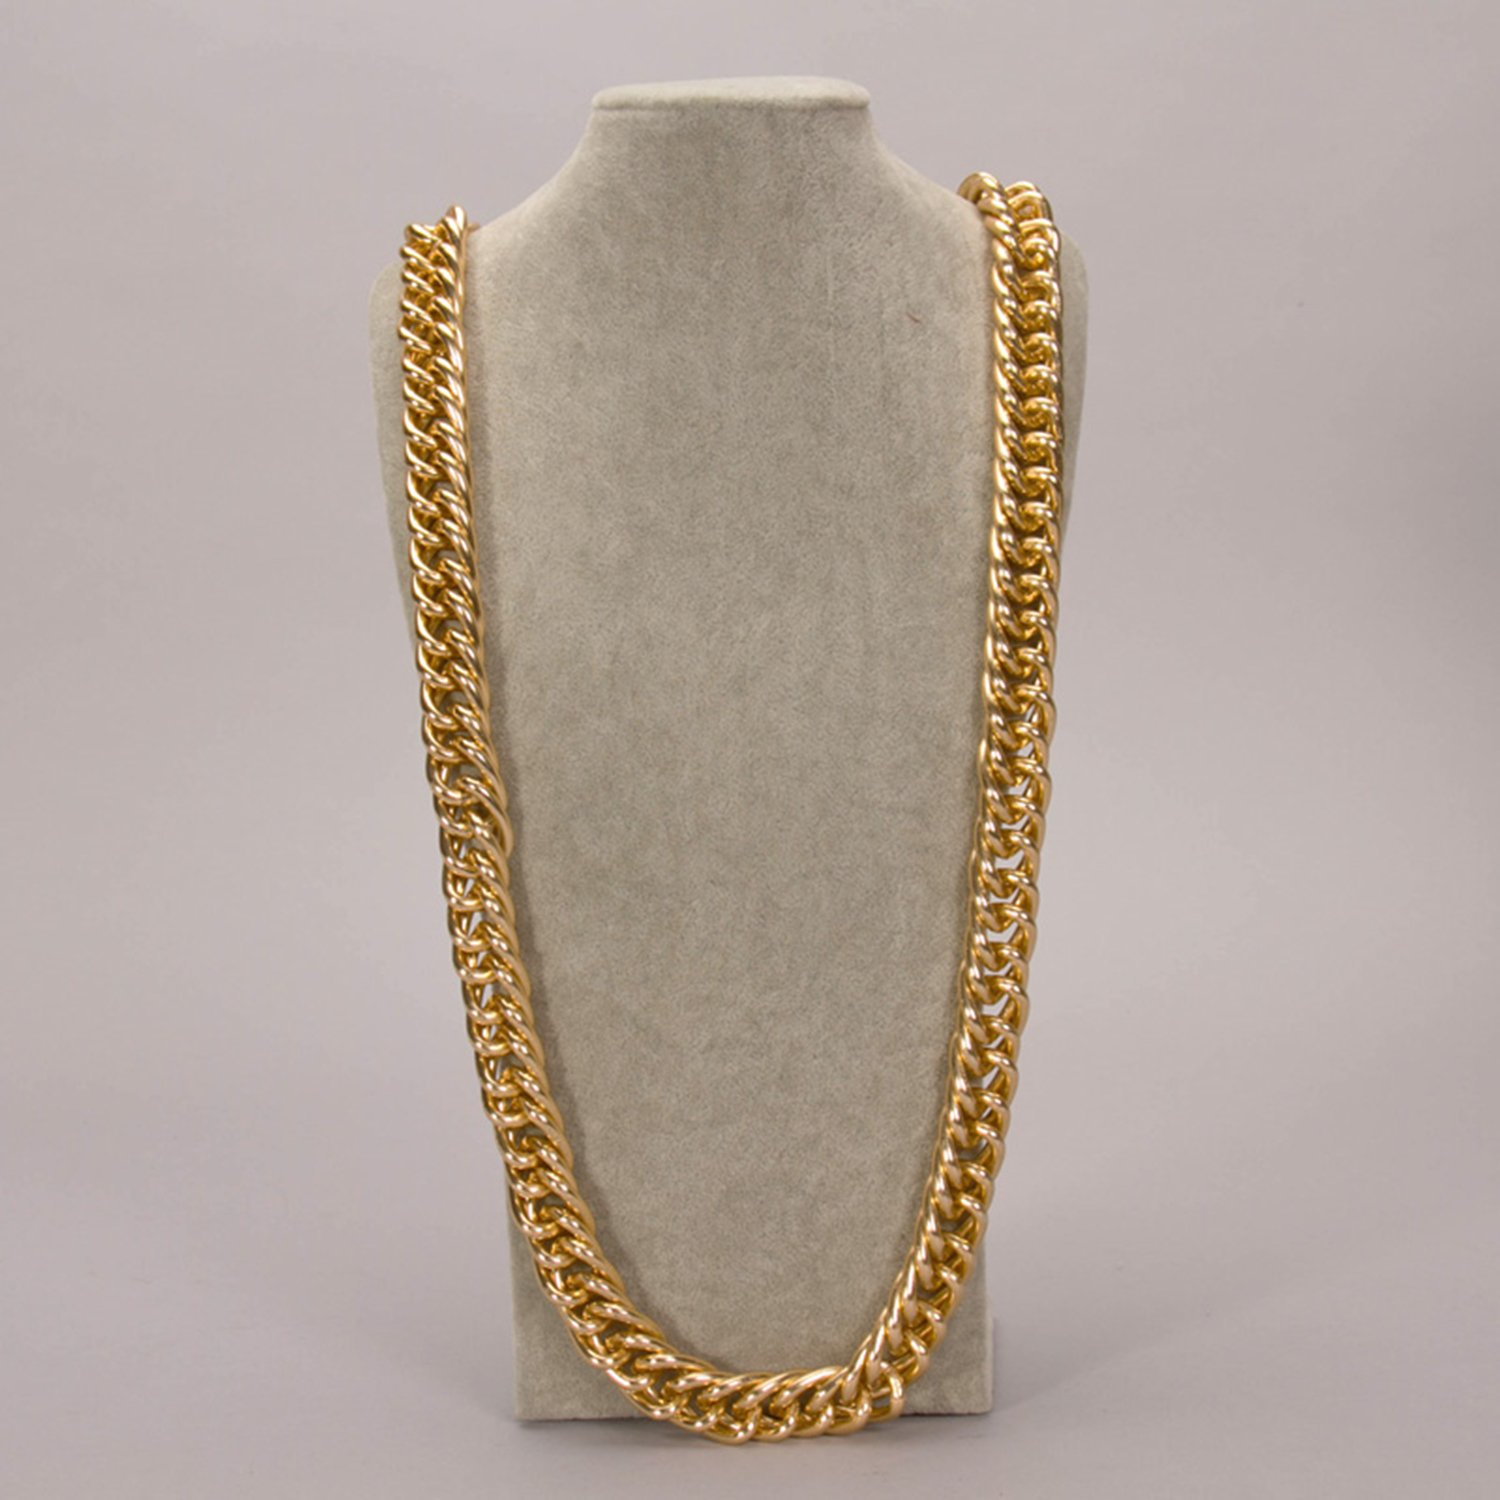 """Celebrity cuban franco Miami chain twisted ICED OUT gold plated 36"""" mens necklace 20MM width"""